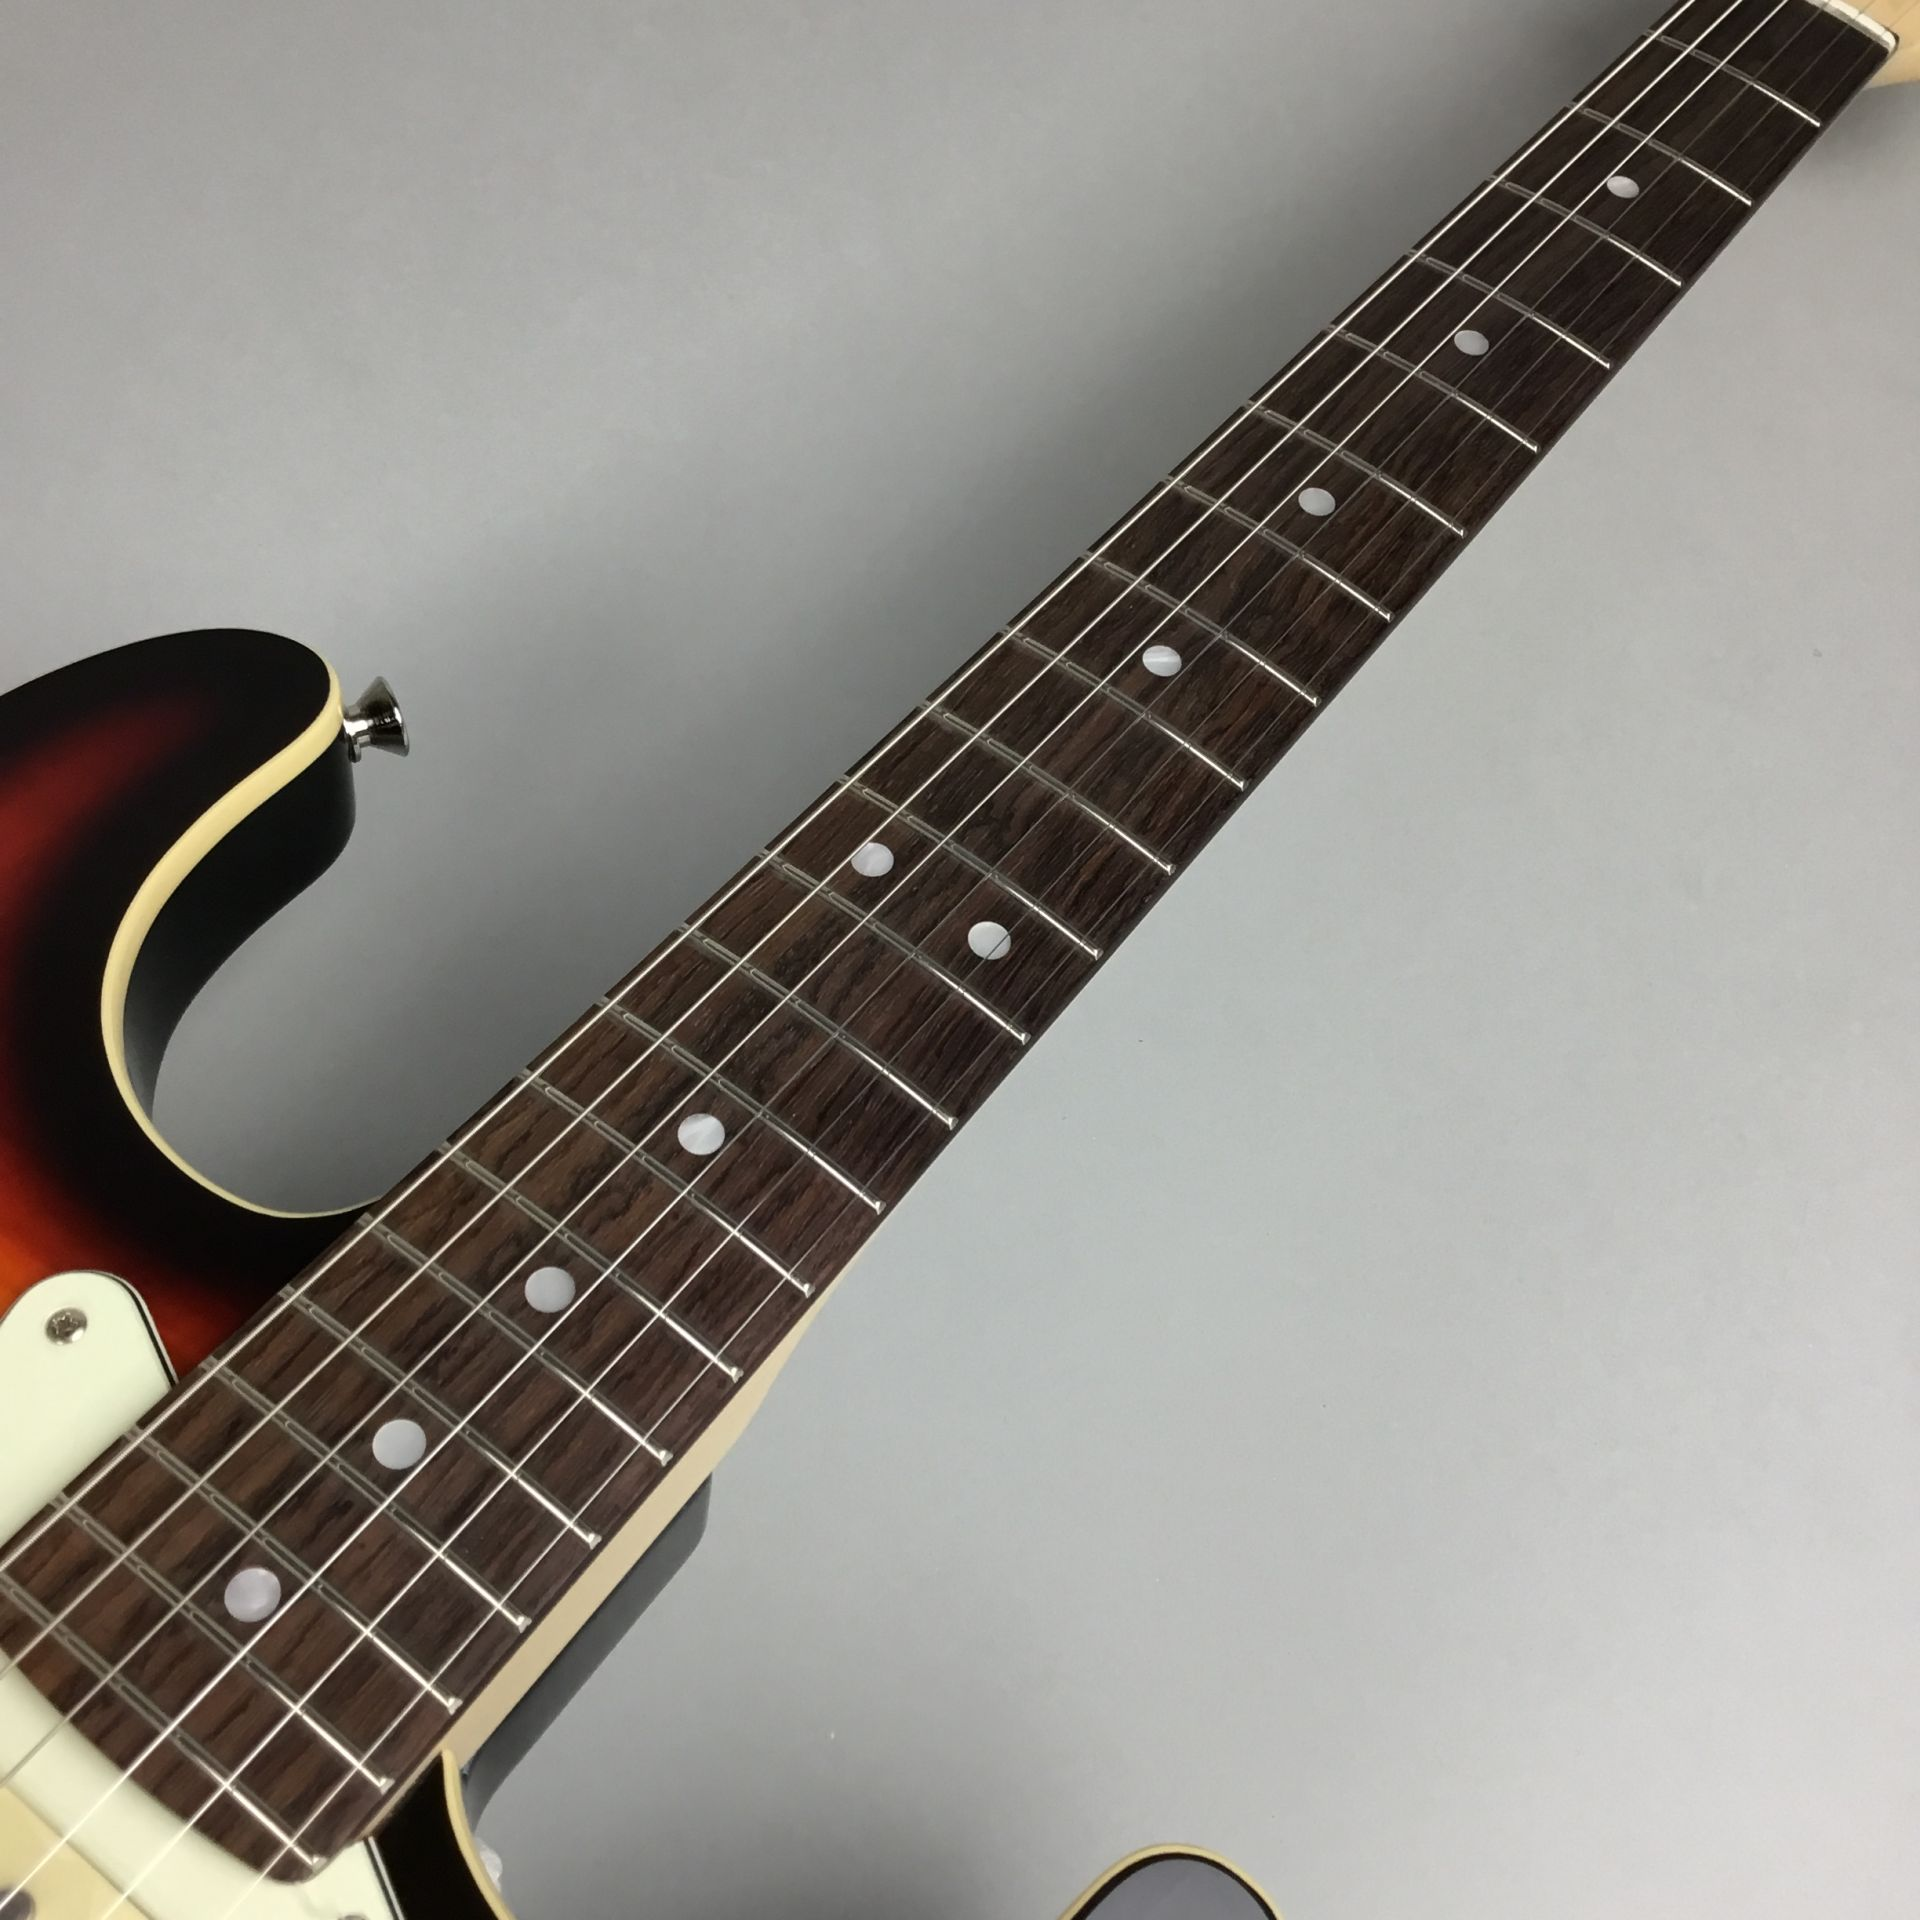 LIMITED EDITION AERODYNE CLASSIC STRATOCASTER® FLAME MAPLE TOPのボディバック-アップ画像